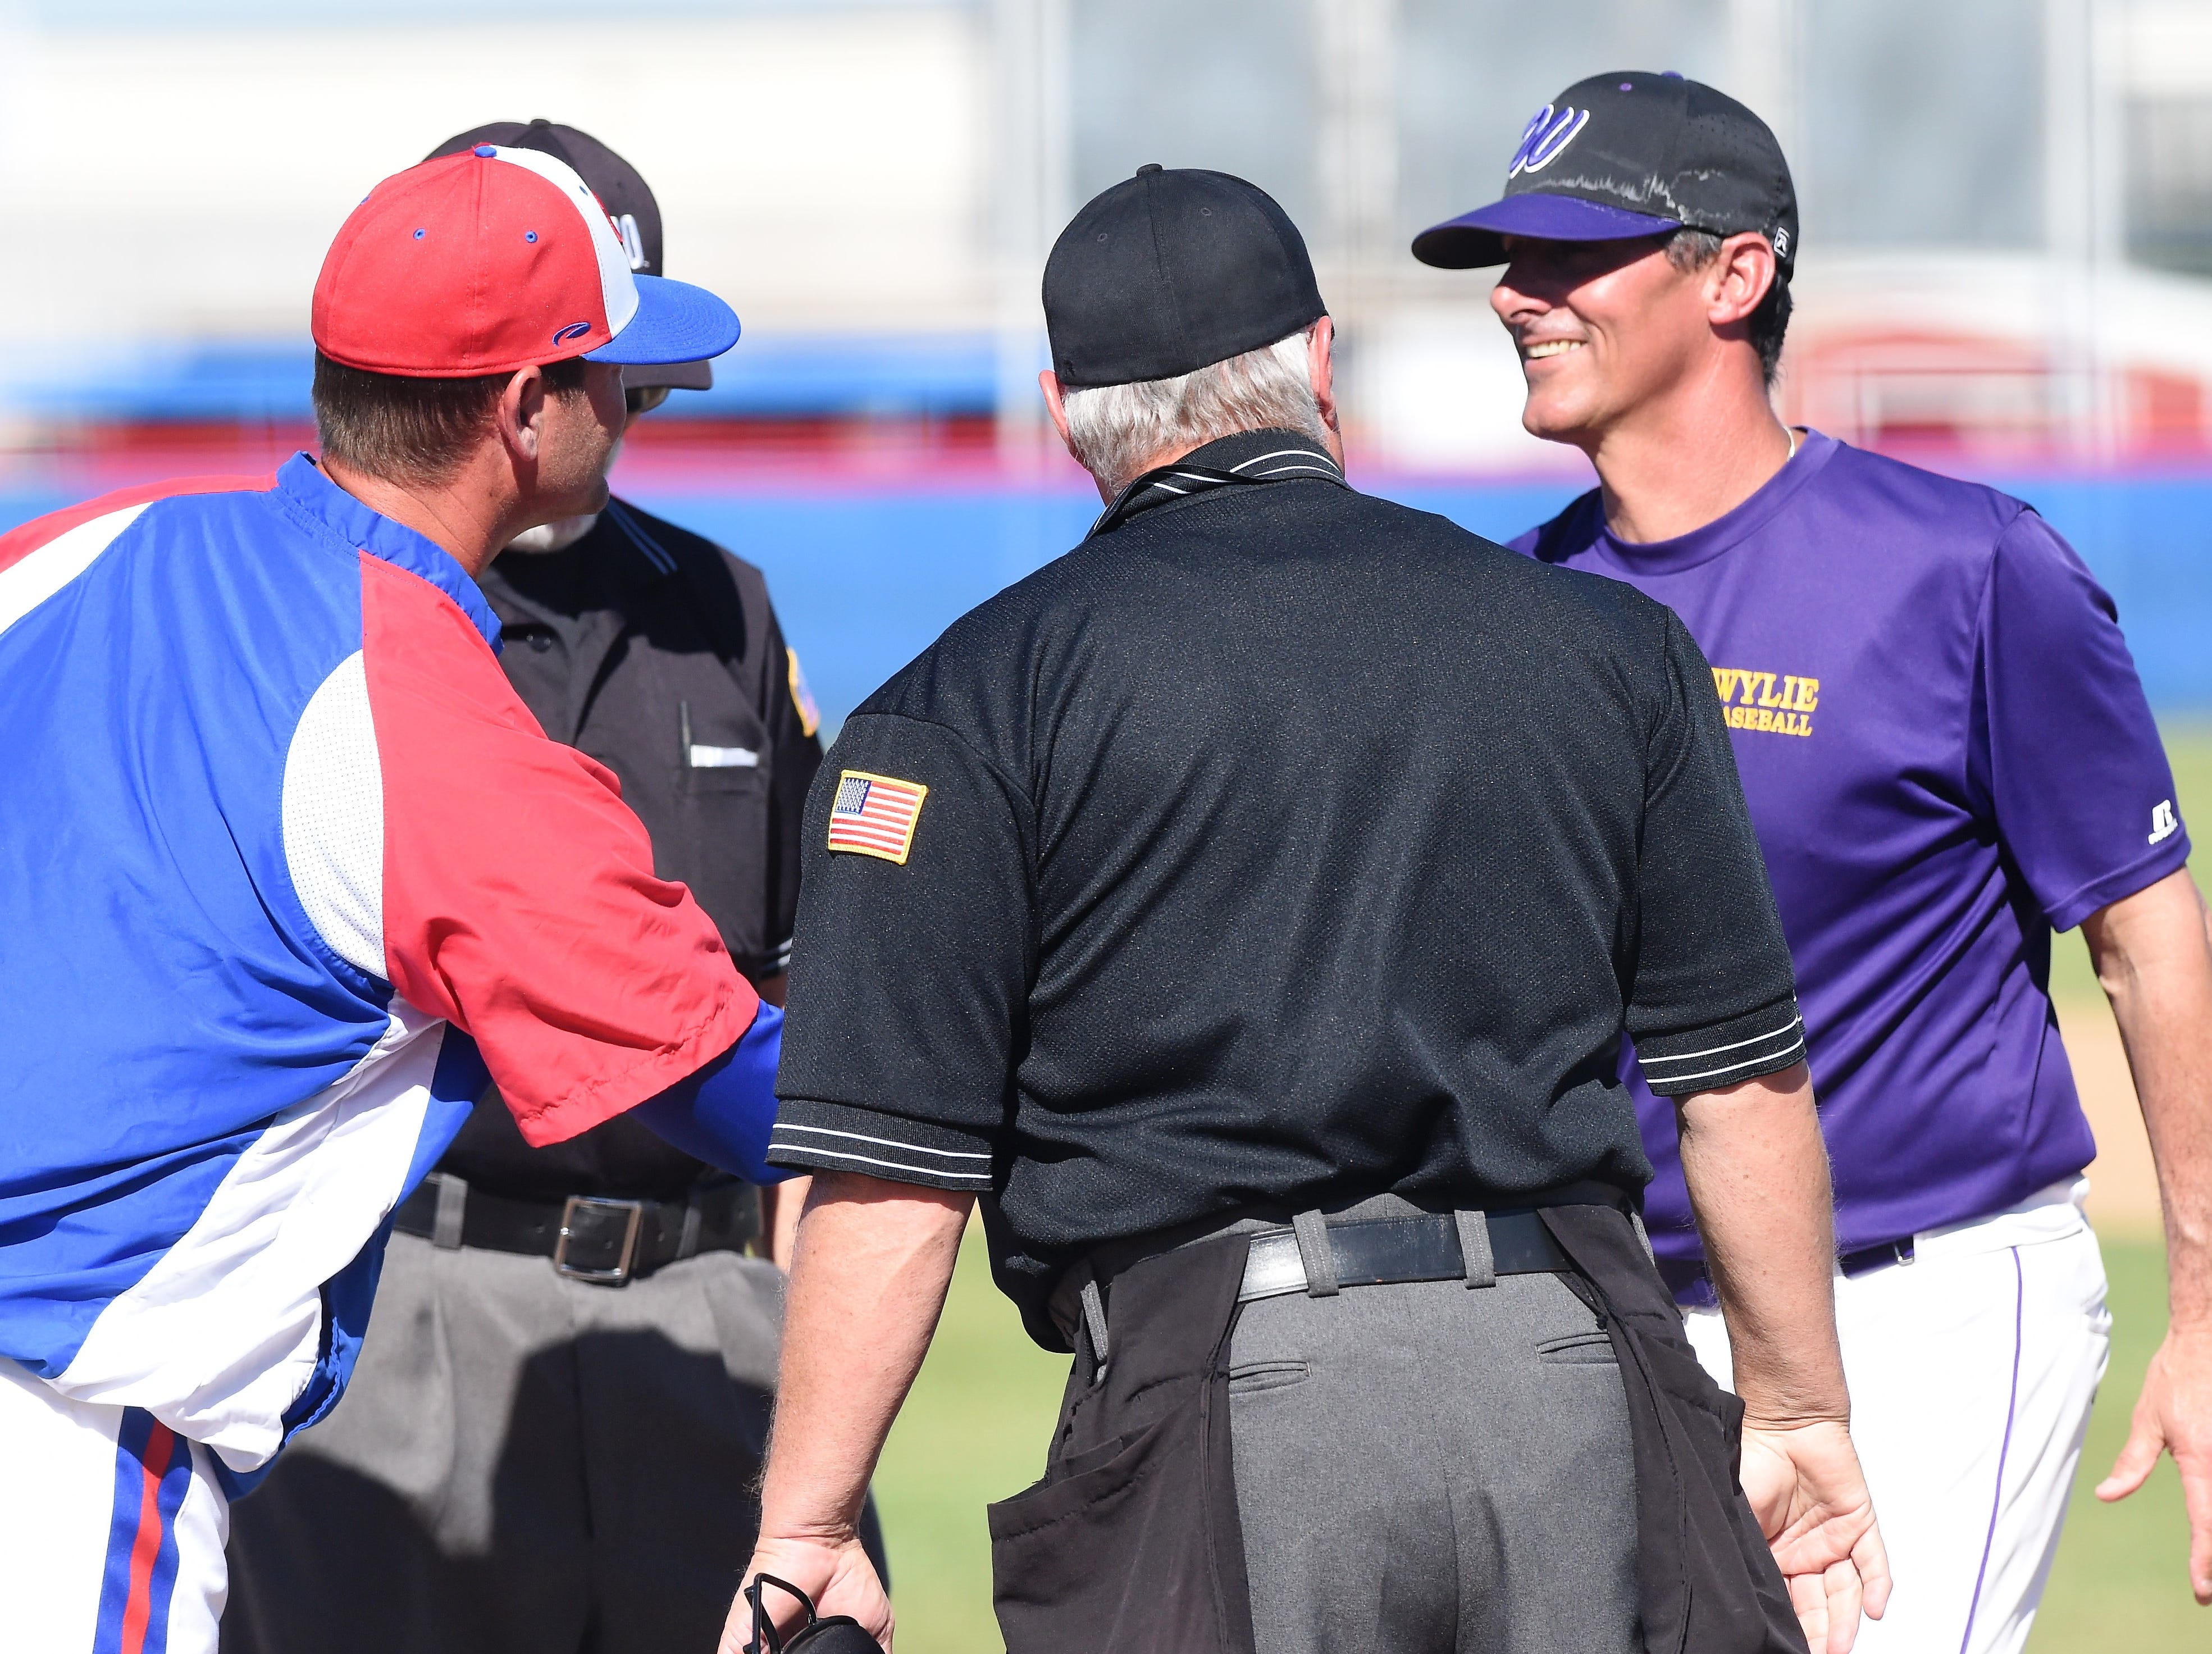 Cooper coach Cody Salyers and Wylie coach Clay Martin shake hands before the game at Cougar Field on Tuesday, April 9, 2019. Wylie pulled out the 11-5 win.